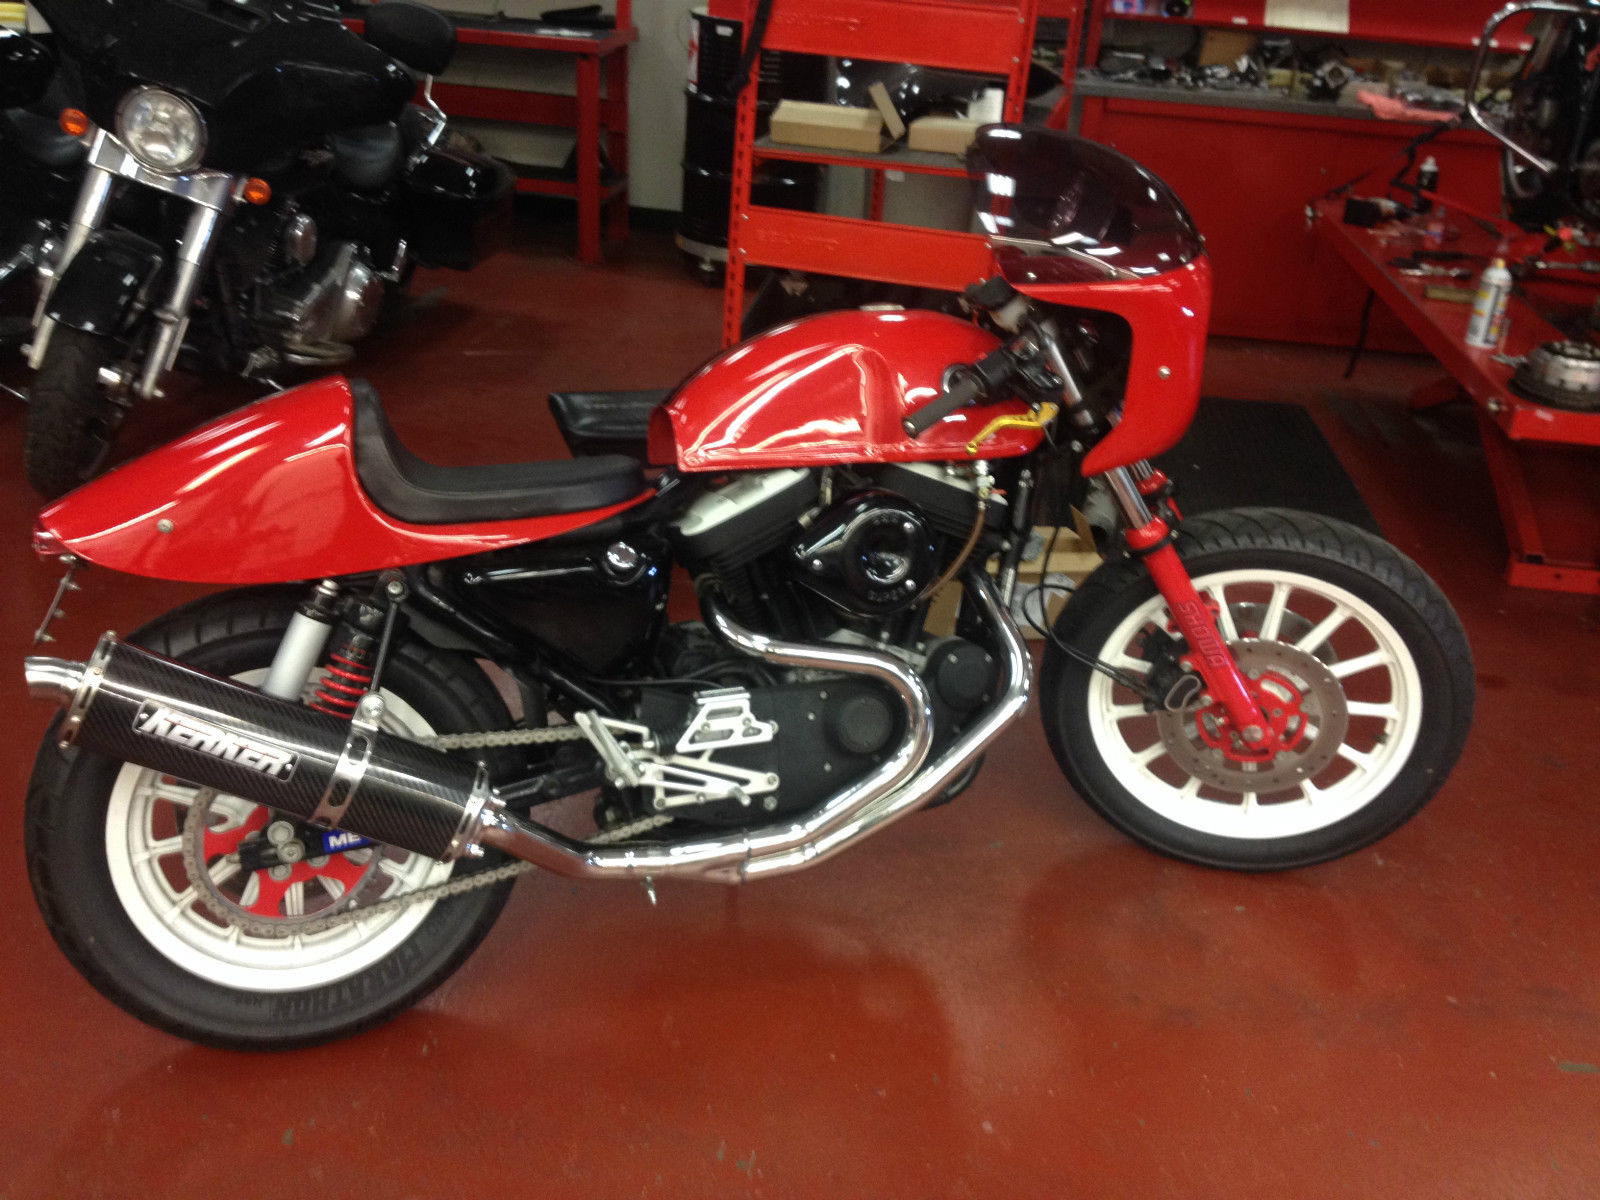 Harley Davidson Sportster Th Anniversary Custom Cafe Racer For Sale on Sportster Ignition Coil Relocation